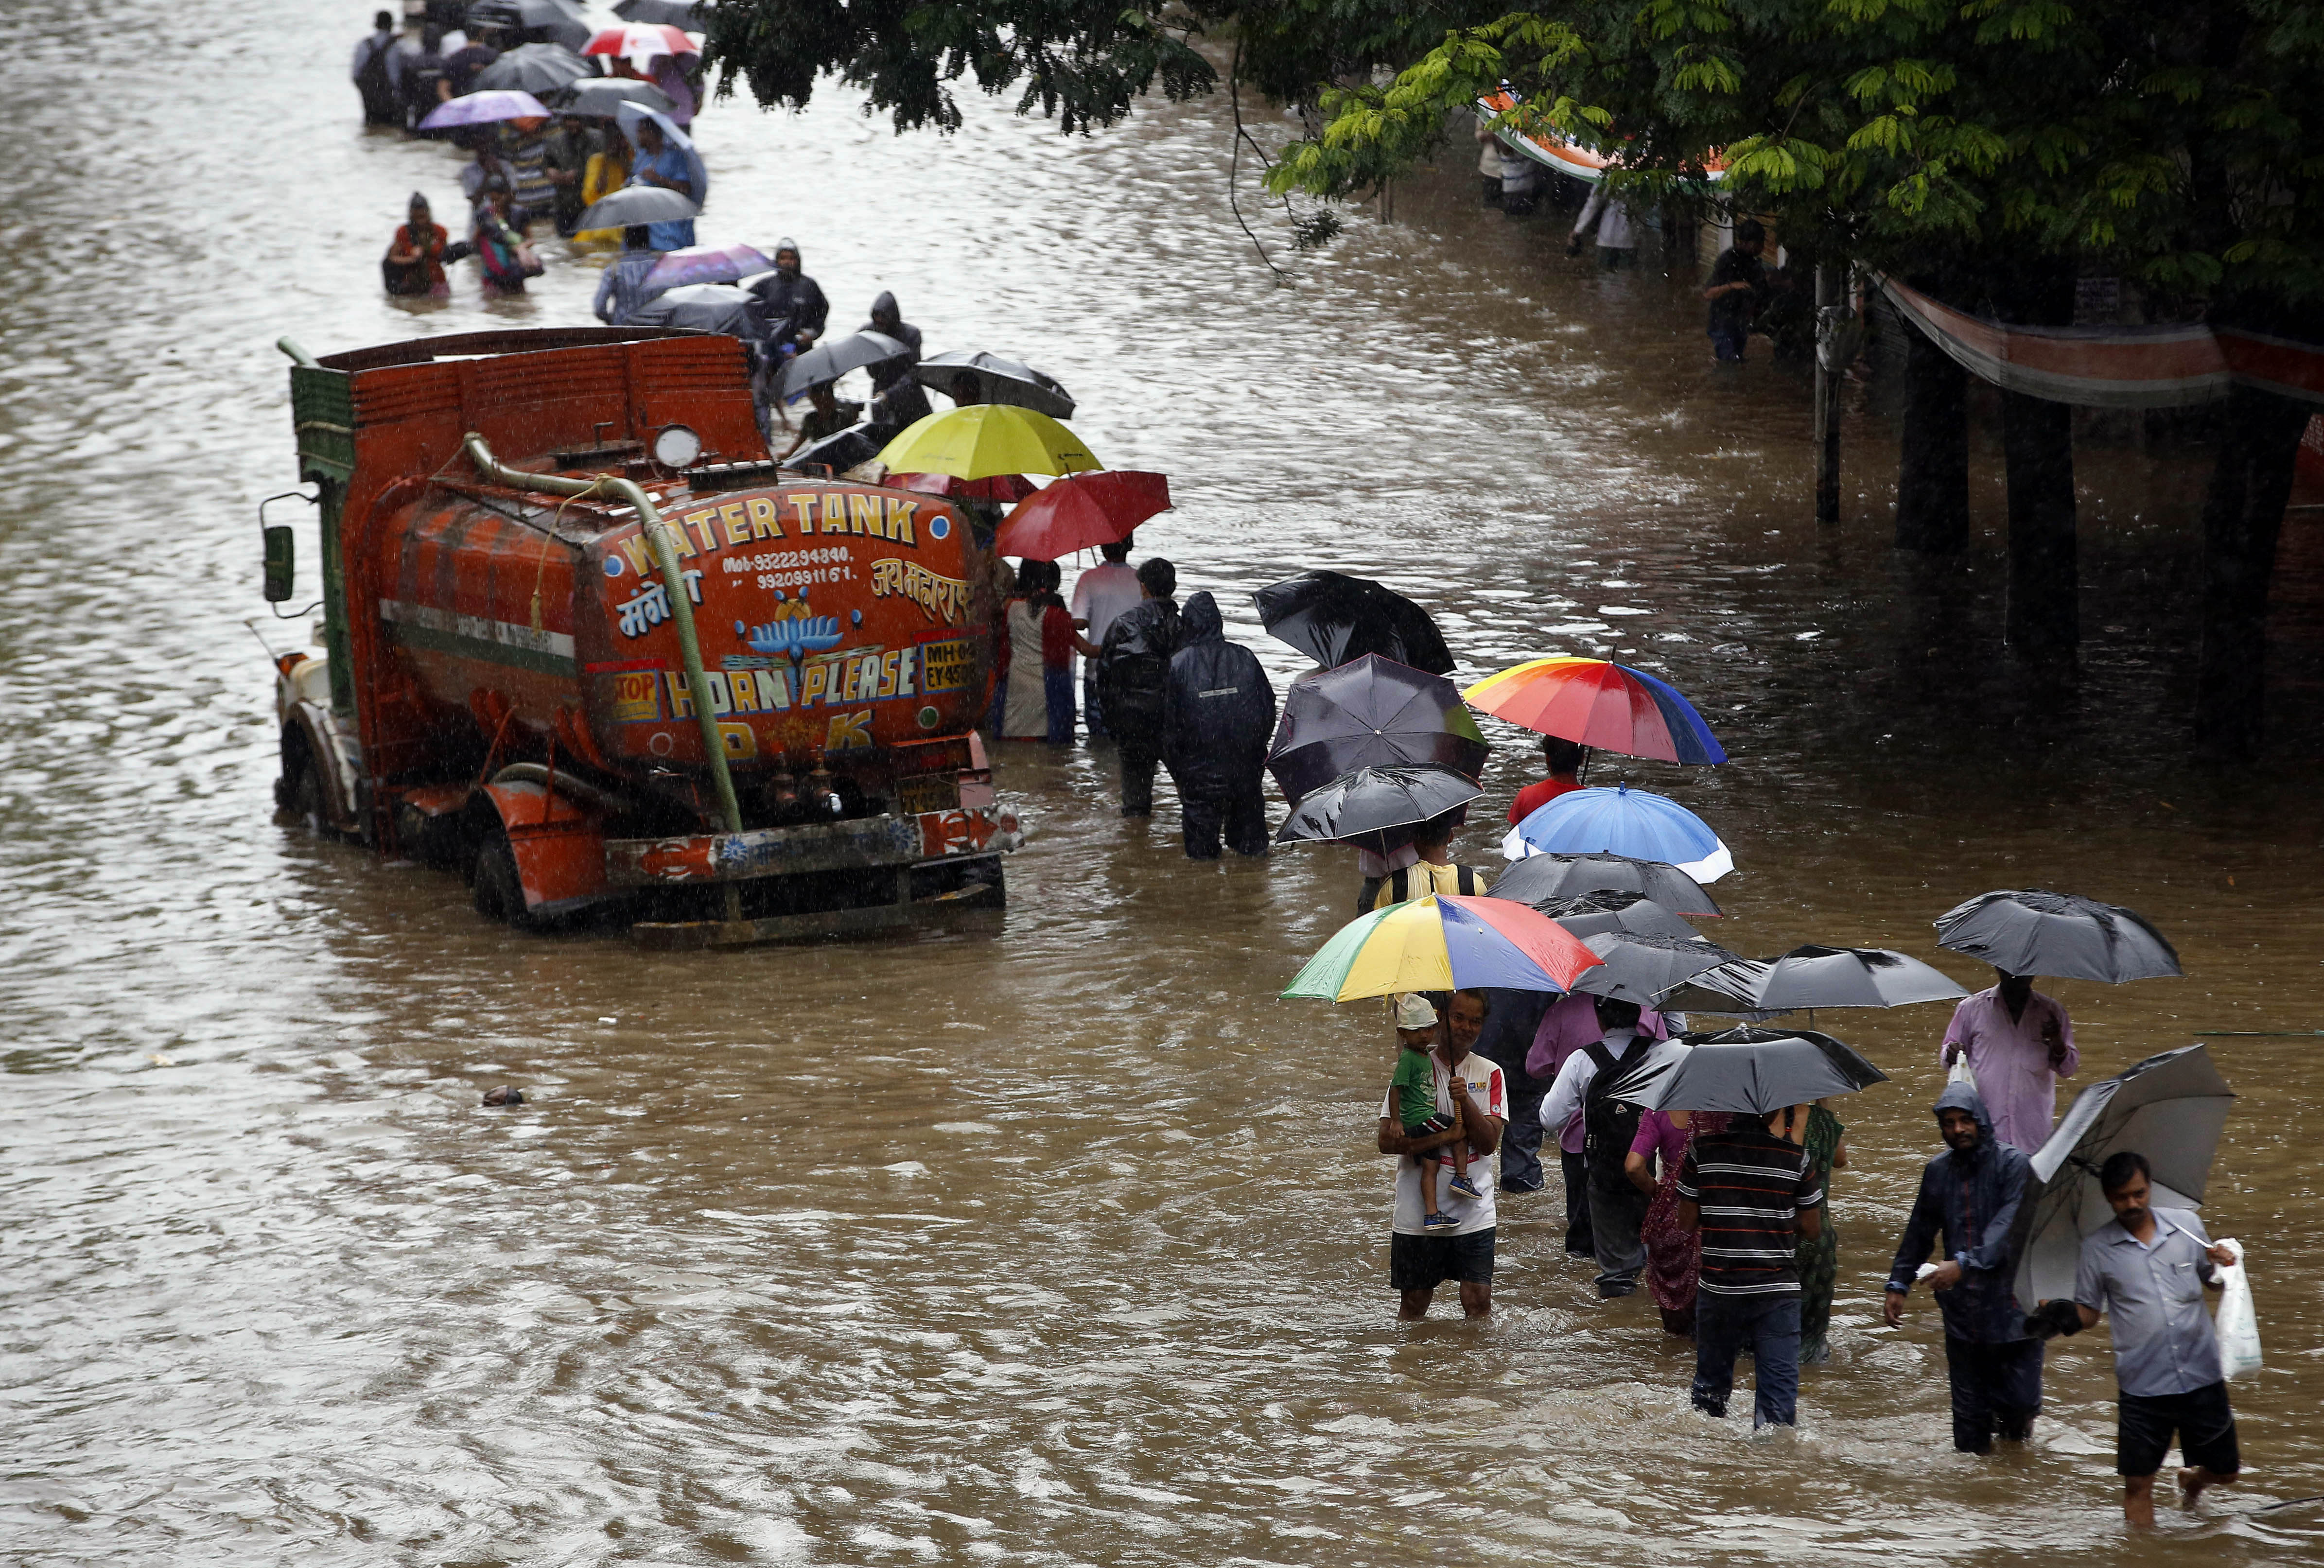 Extremely heavy rainfall expected in Mumbai this weekend, stay indoors: IMD